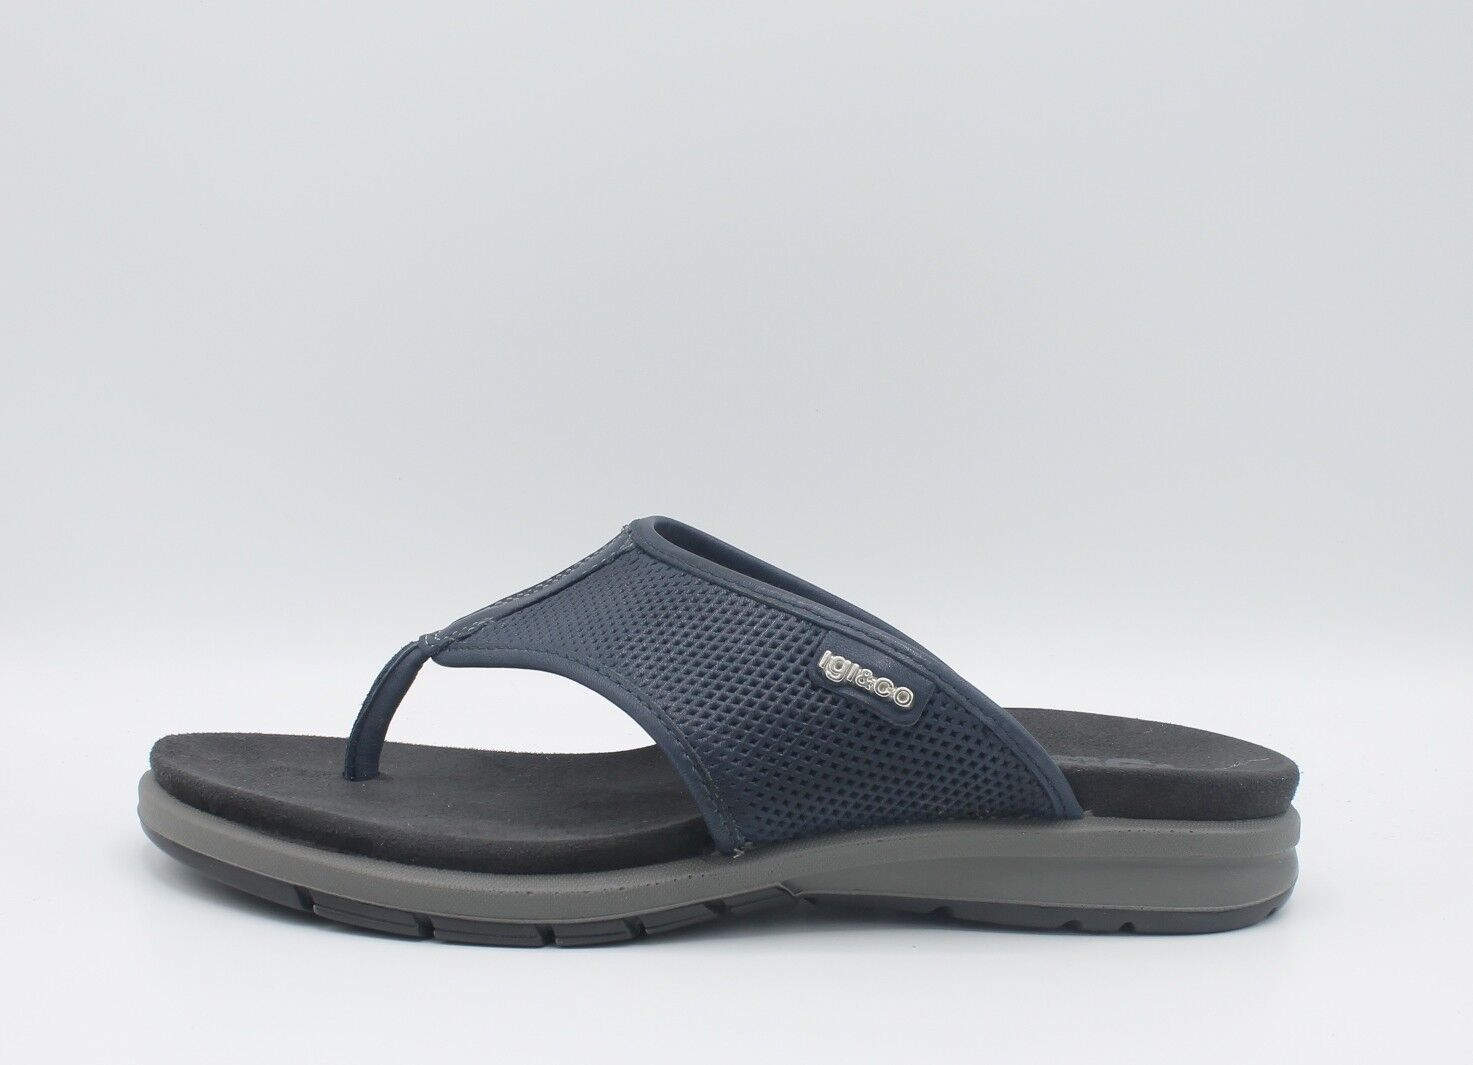 IGI & CO. UEA 1128911 Sandals man flip-flops quilted leather smooth bluee